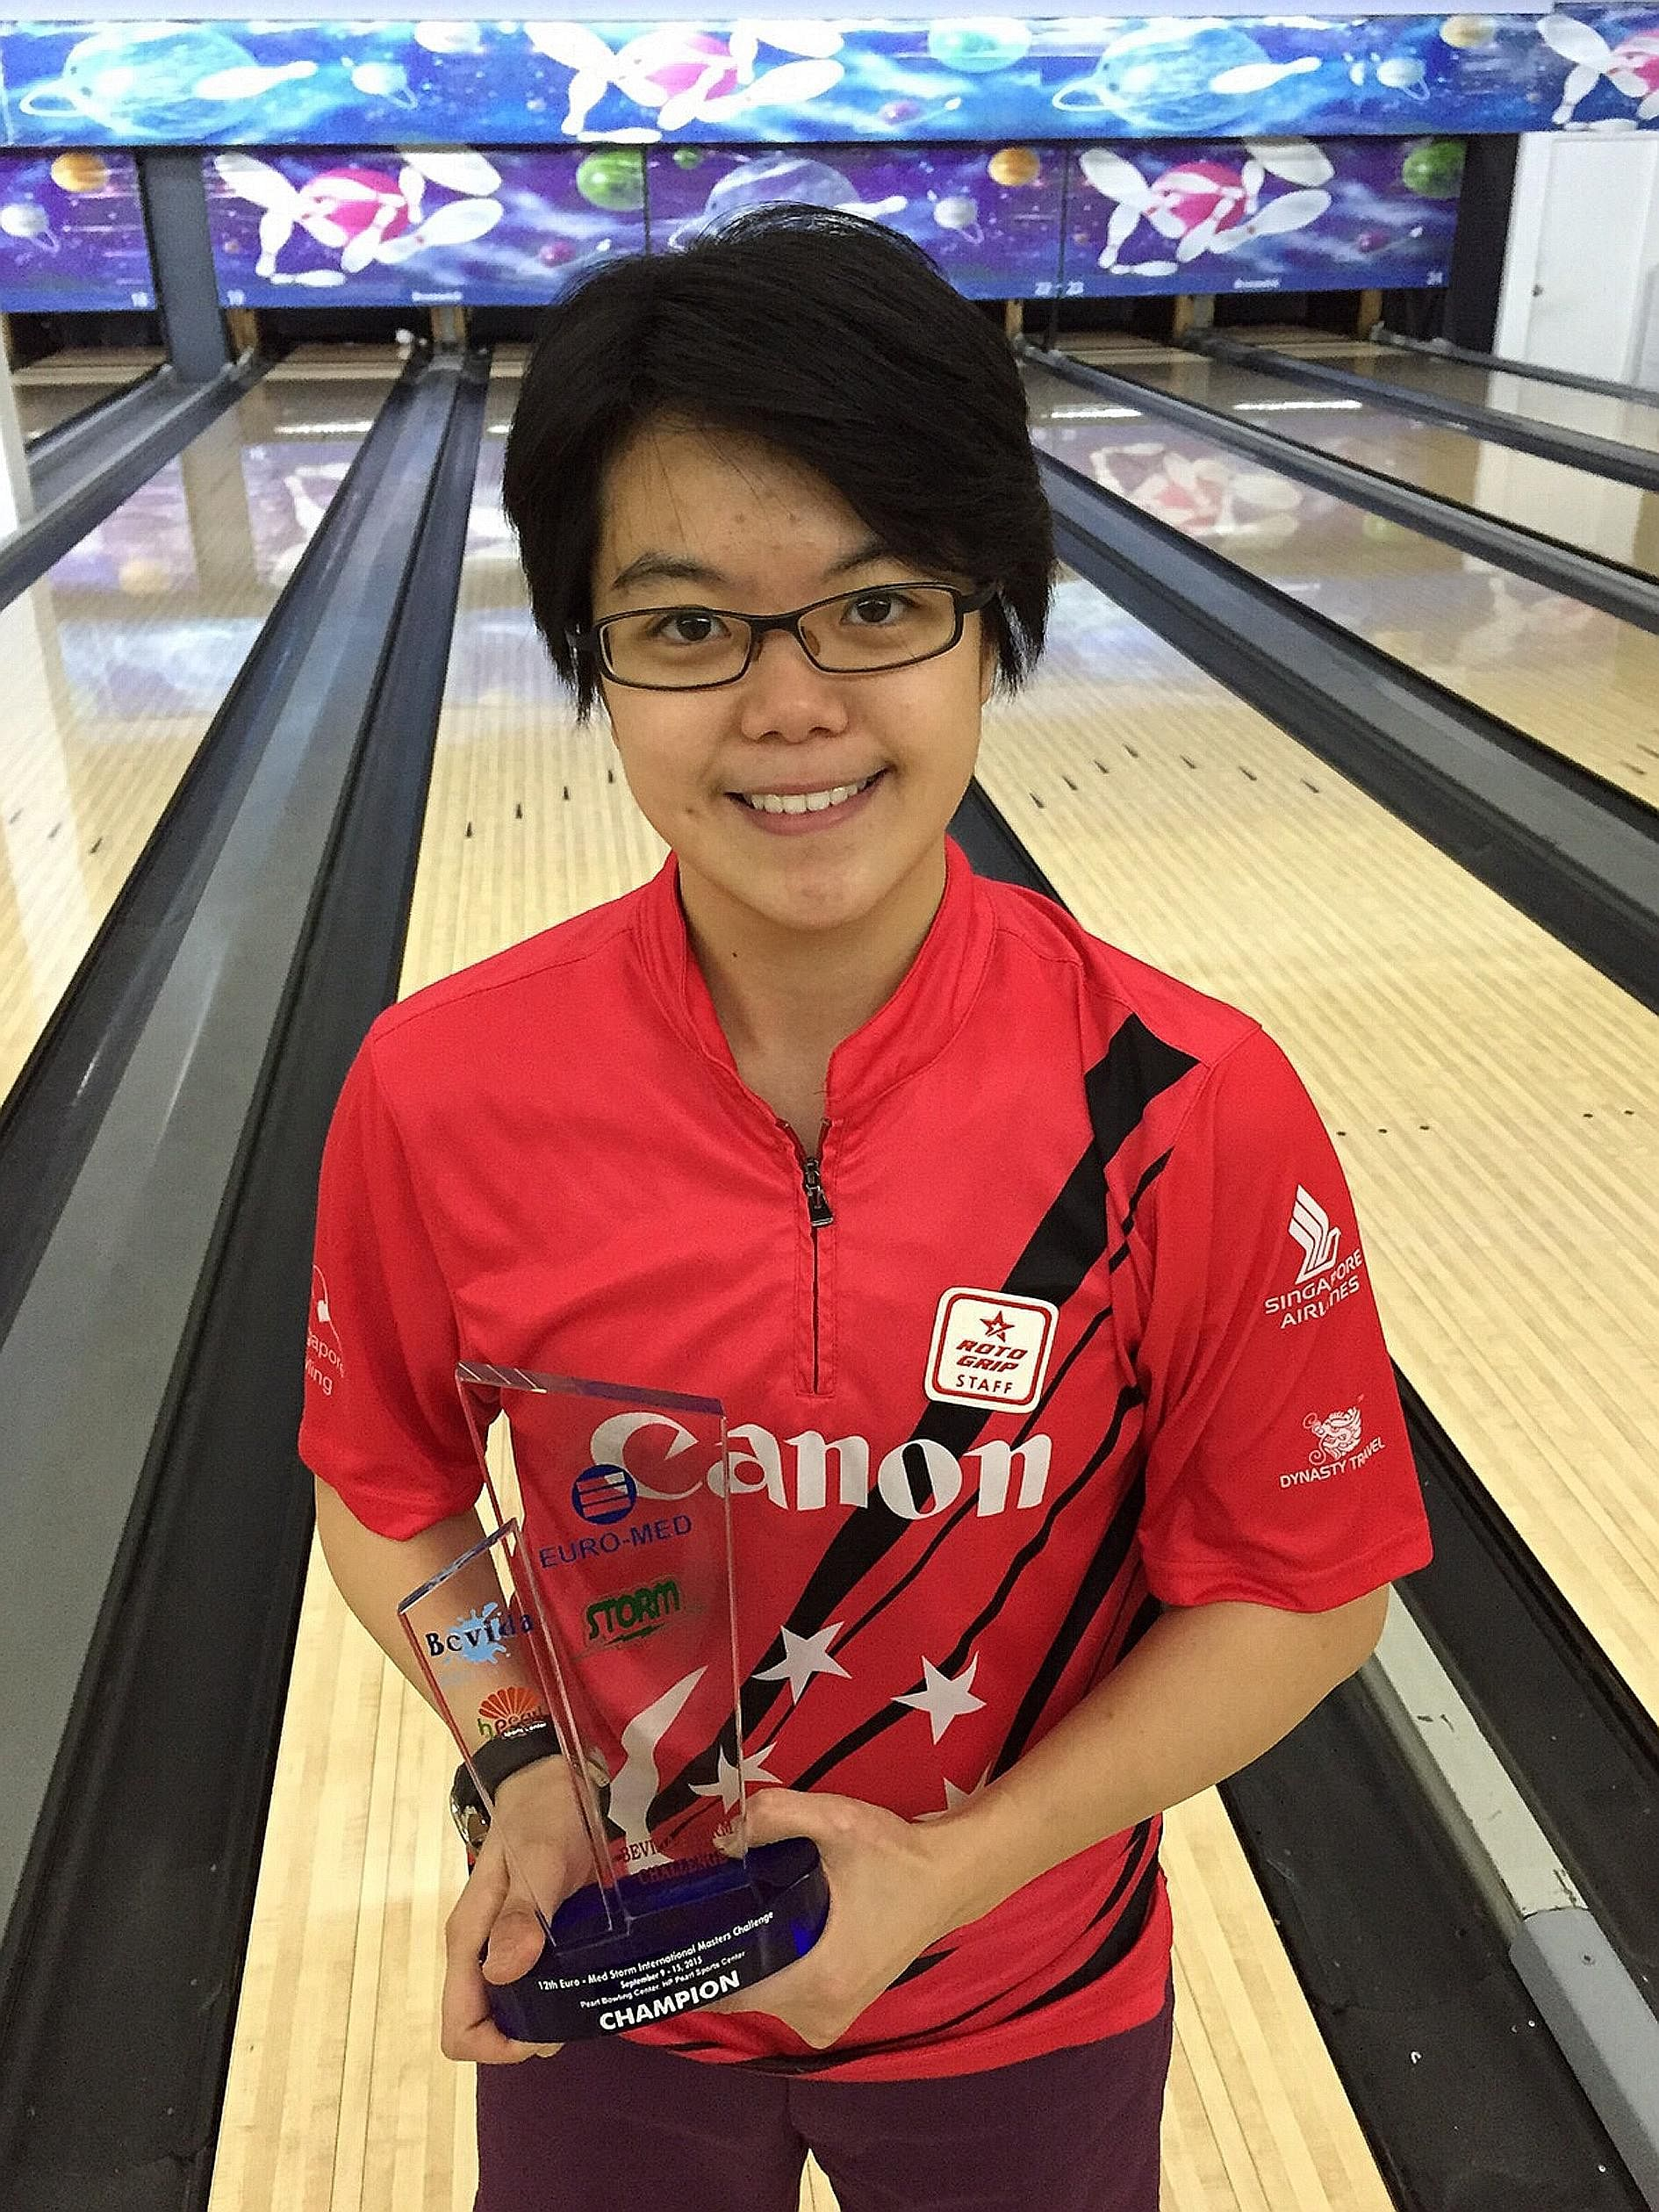 Singapore bowler Cherie Tan won the Euro-Med Storm International Masters Challenge in Manila yesterday, beating home favourite Biboy Rivera in the step-ladder final.